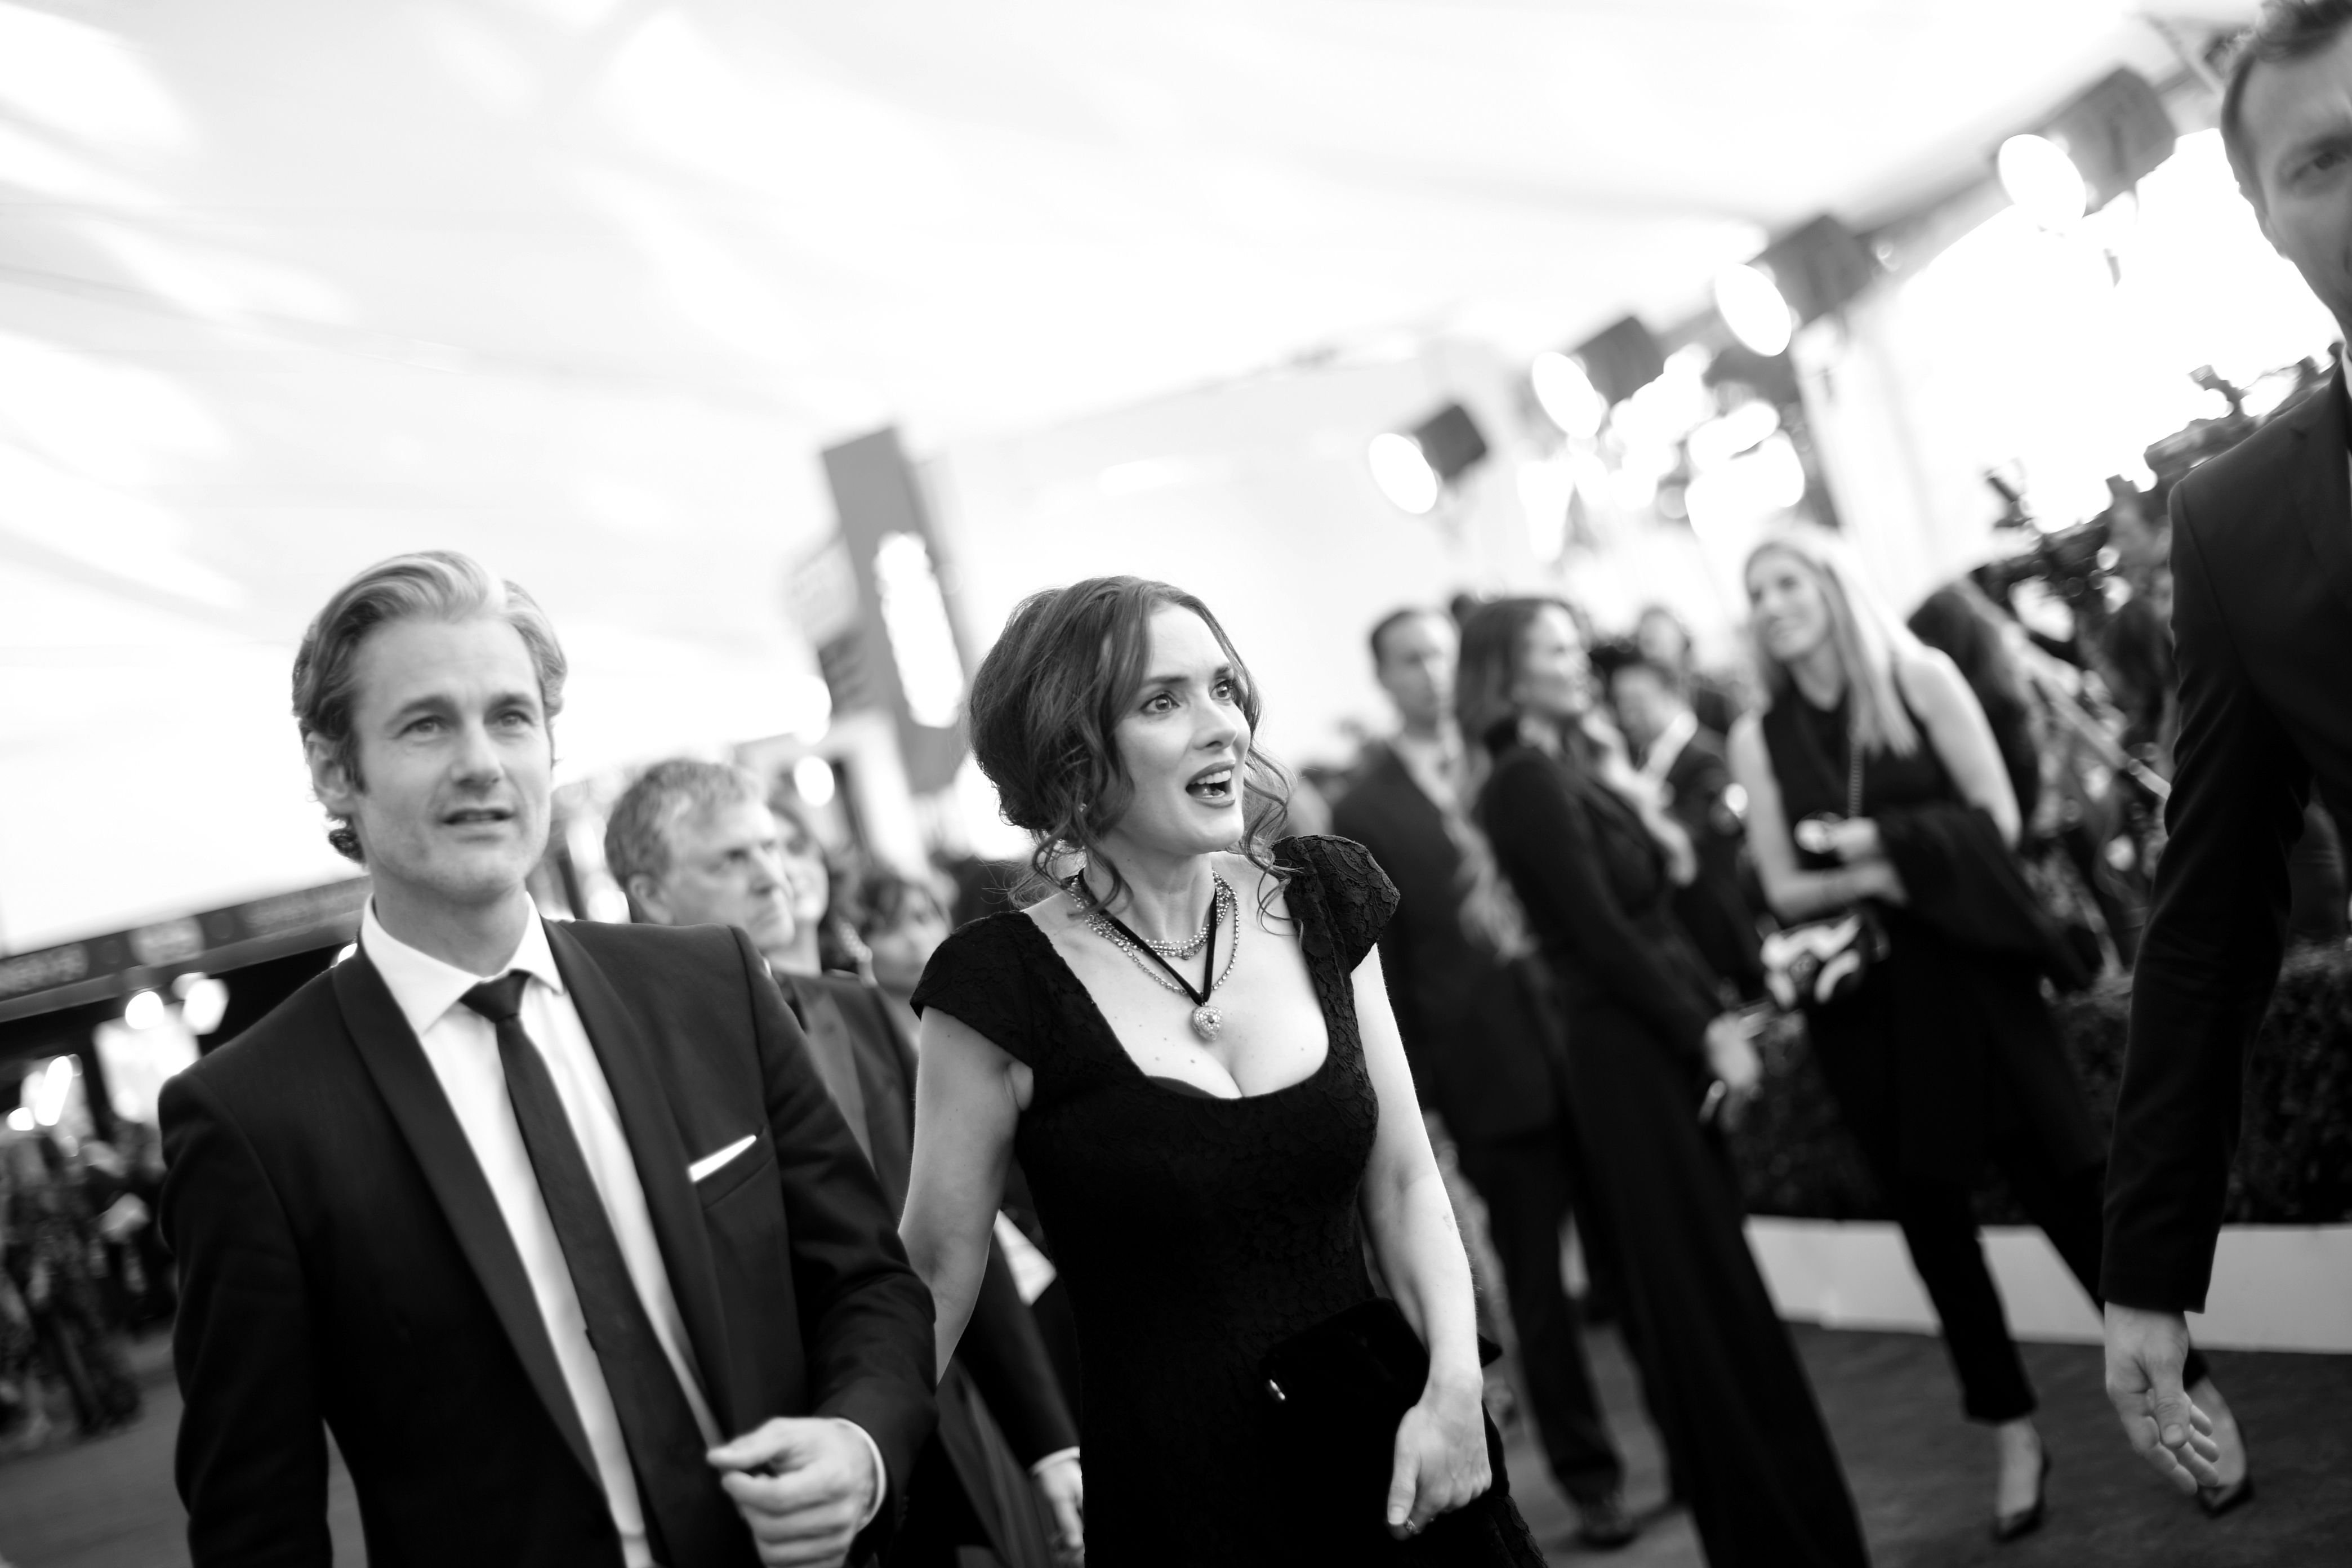 Scott Mackinlay Hahn and Winona Ryder at the 23rd Annual Screen Actors Guild Awards in 2017 in Los Angeles, California | Source: Getty Images